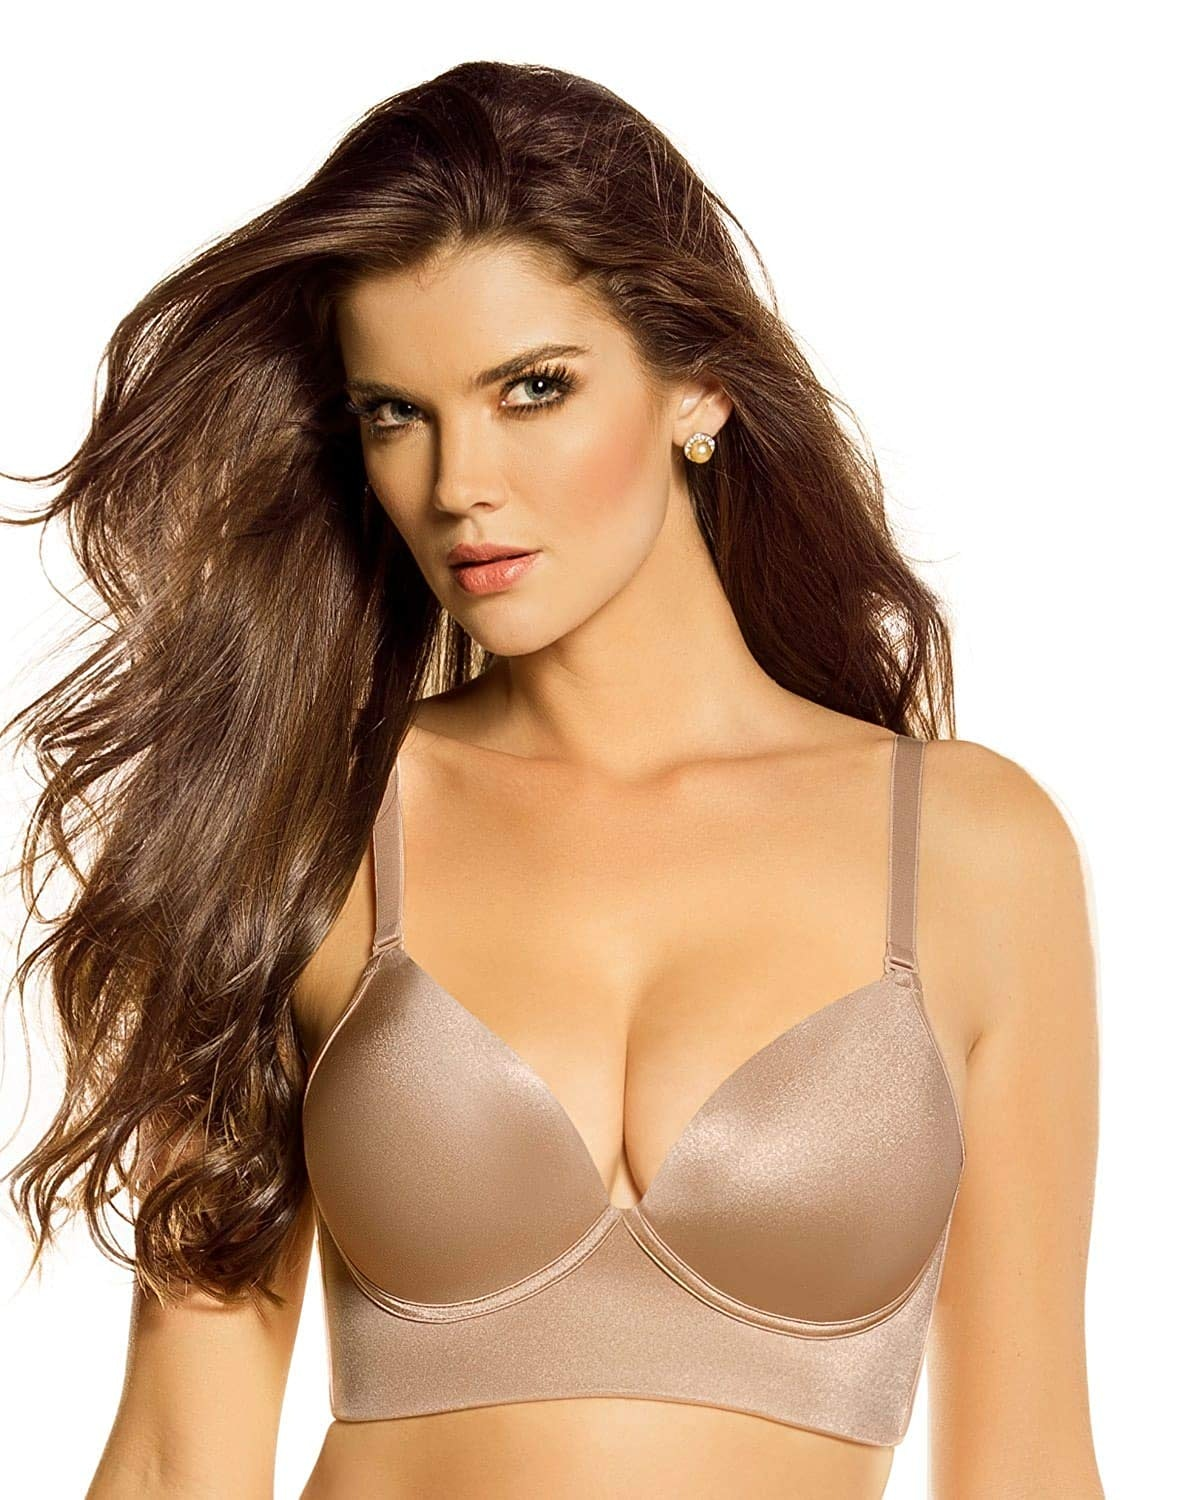 69f9a05922d42 The 12 Best Bras Without Underwire For Large Breasts